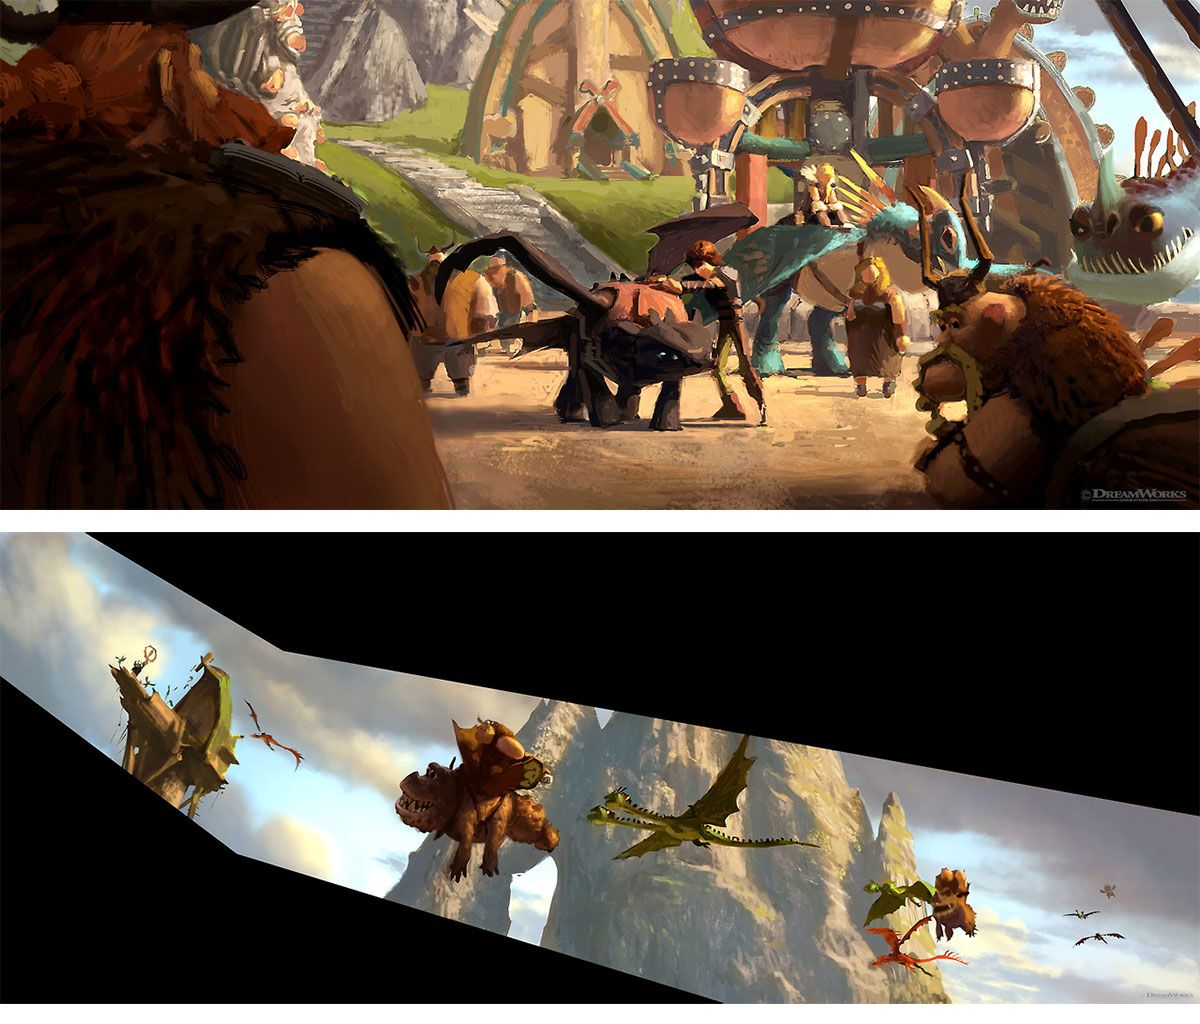 Novas artes de How to Train Your Dragons 2 (vários artistas) | THECAB - The Concept Art Blog